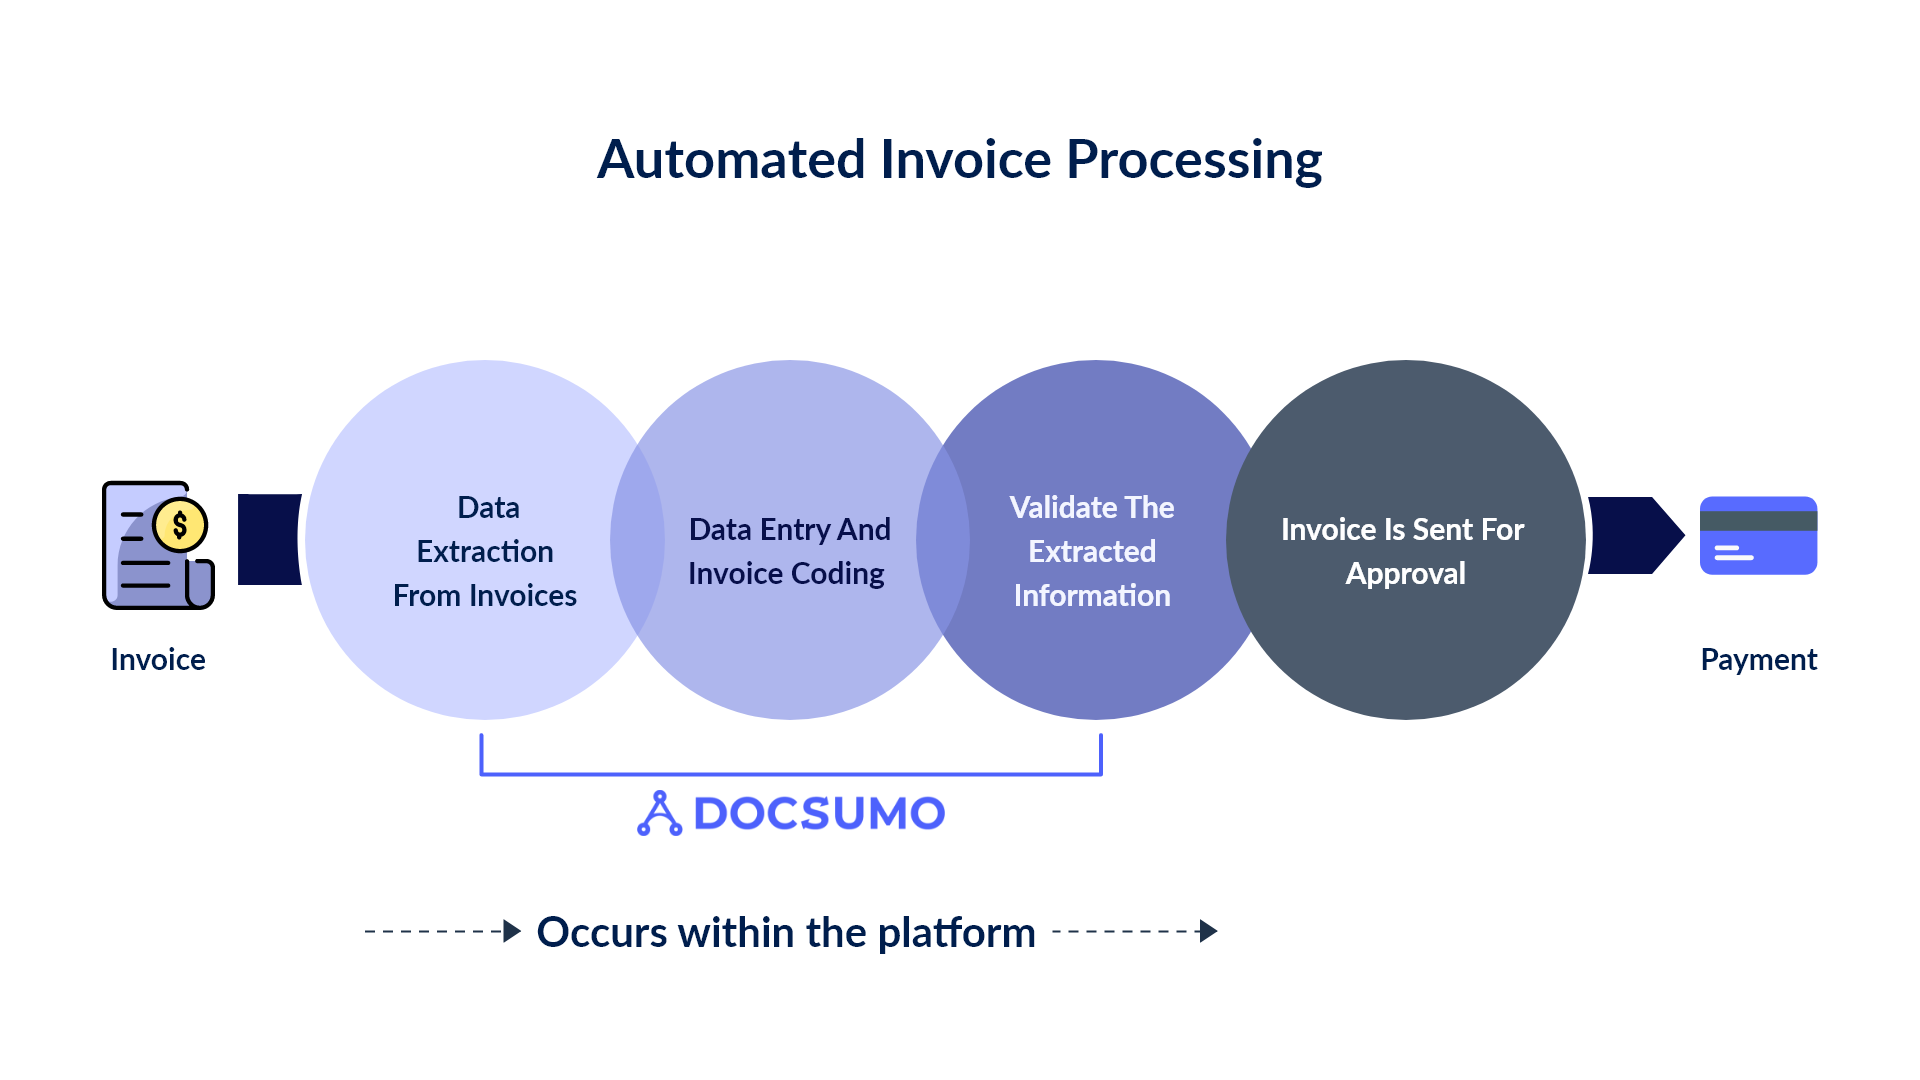 automated invoice processing workflow